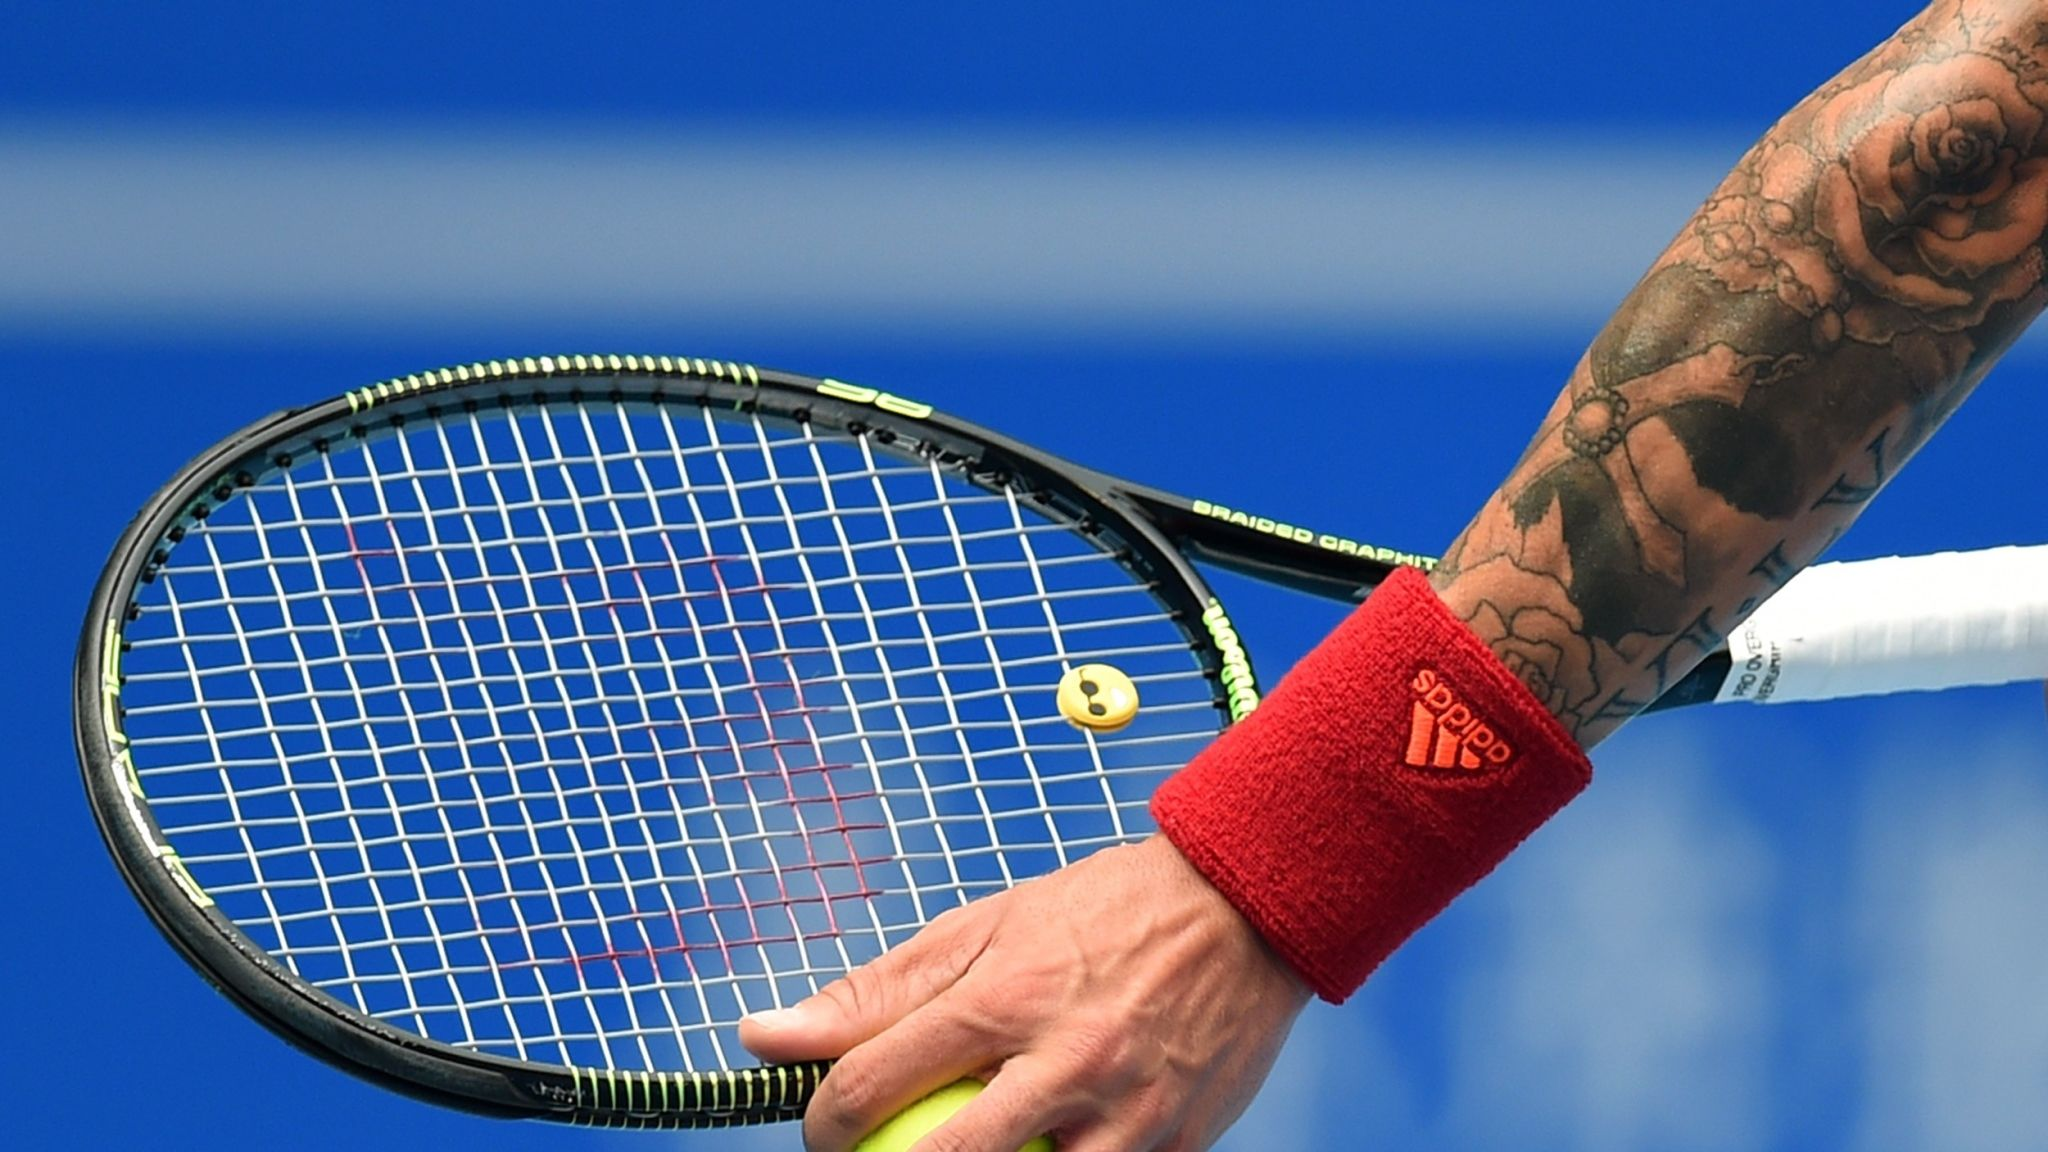 Bbc report tennis betting picks italy spain betting preview goal